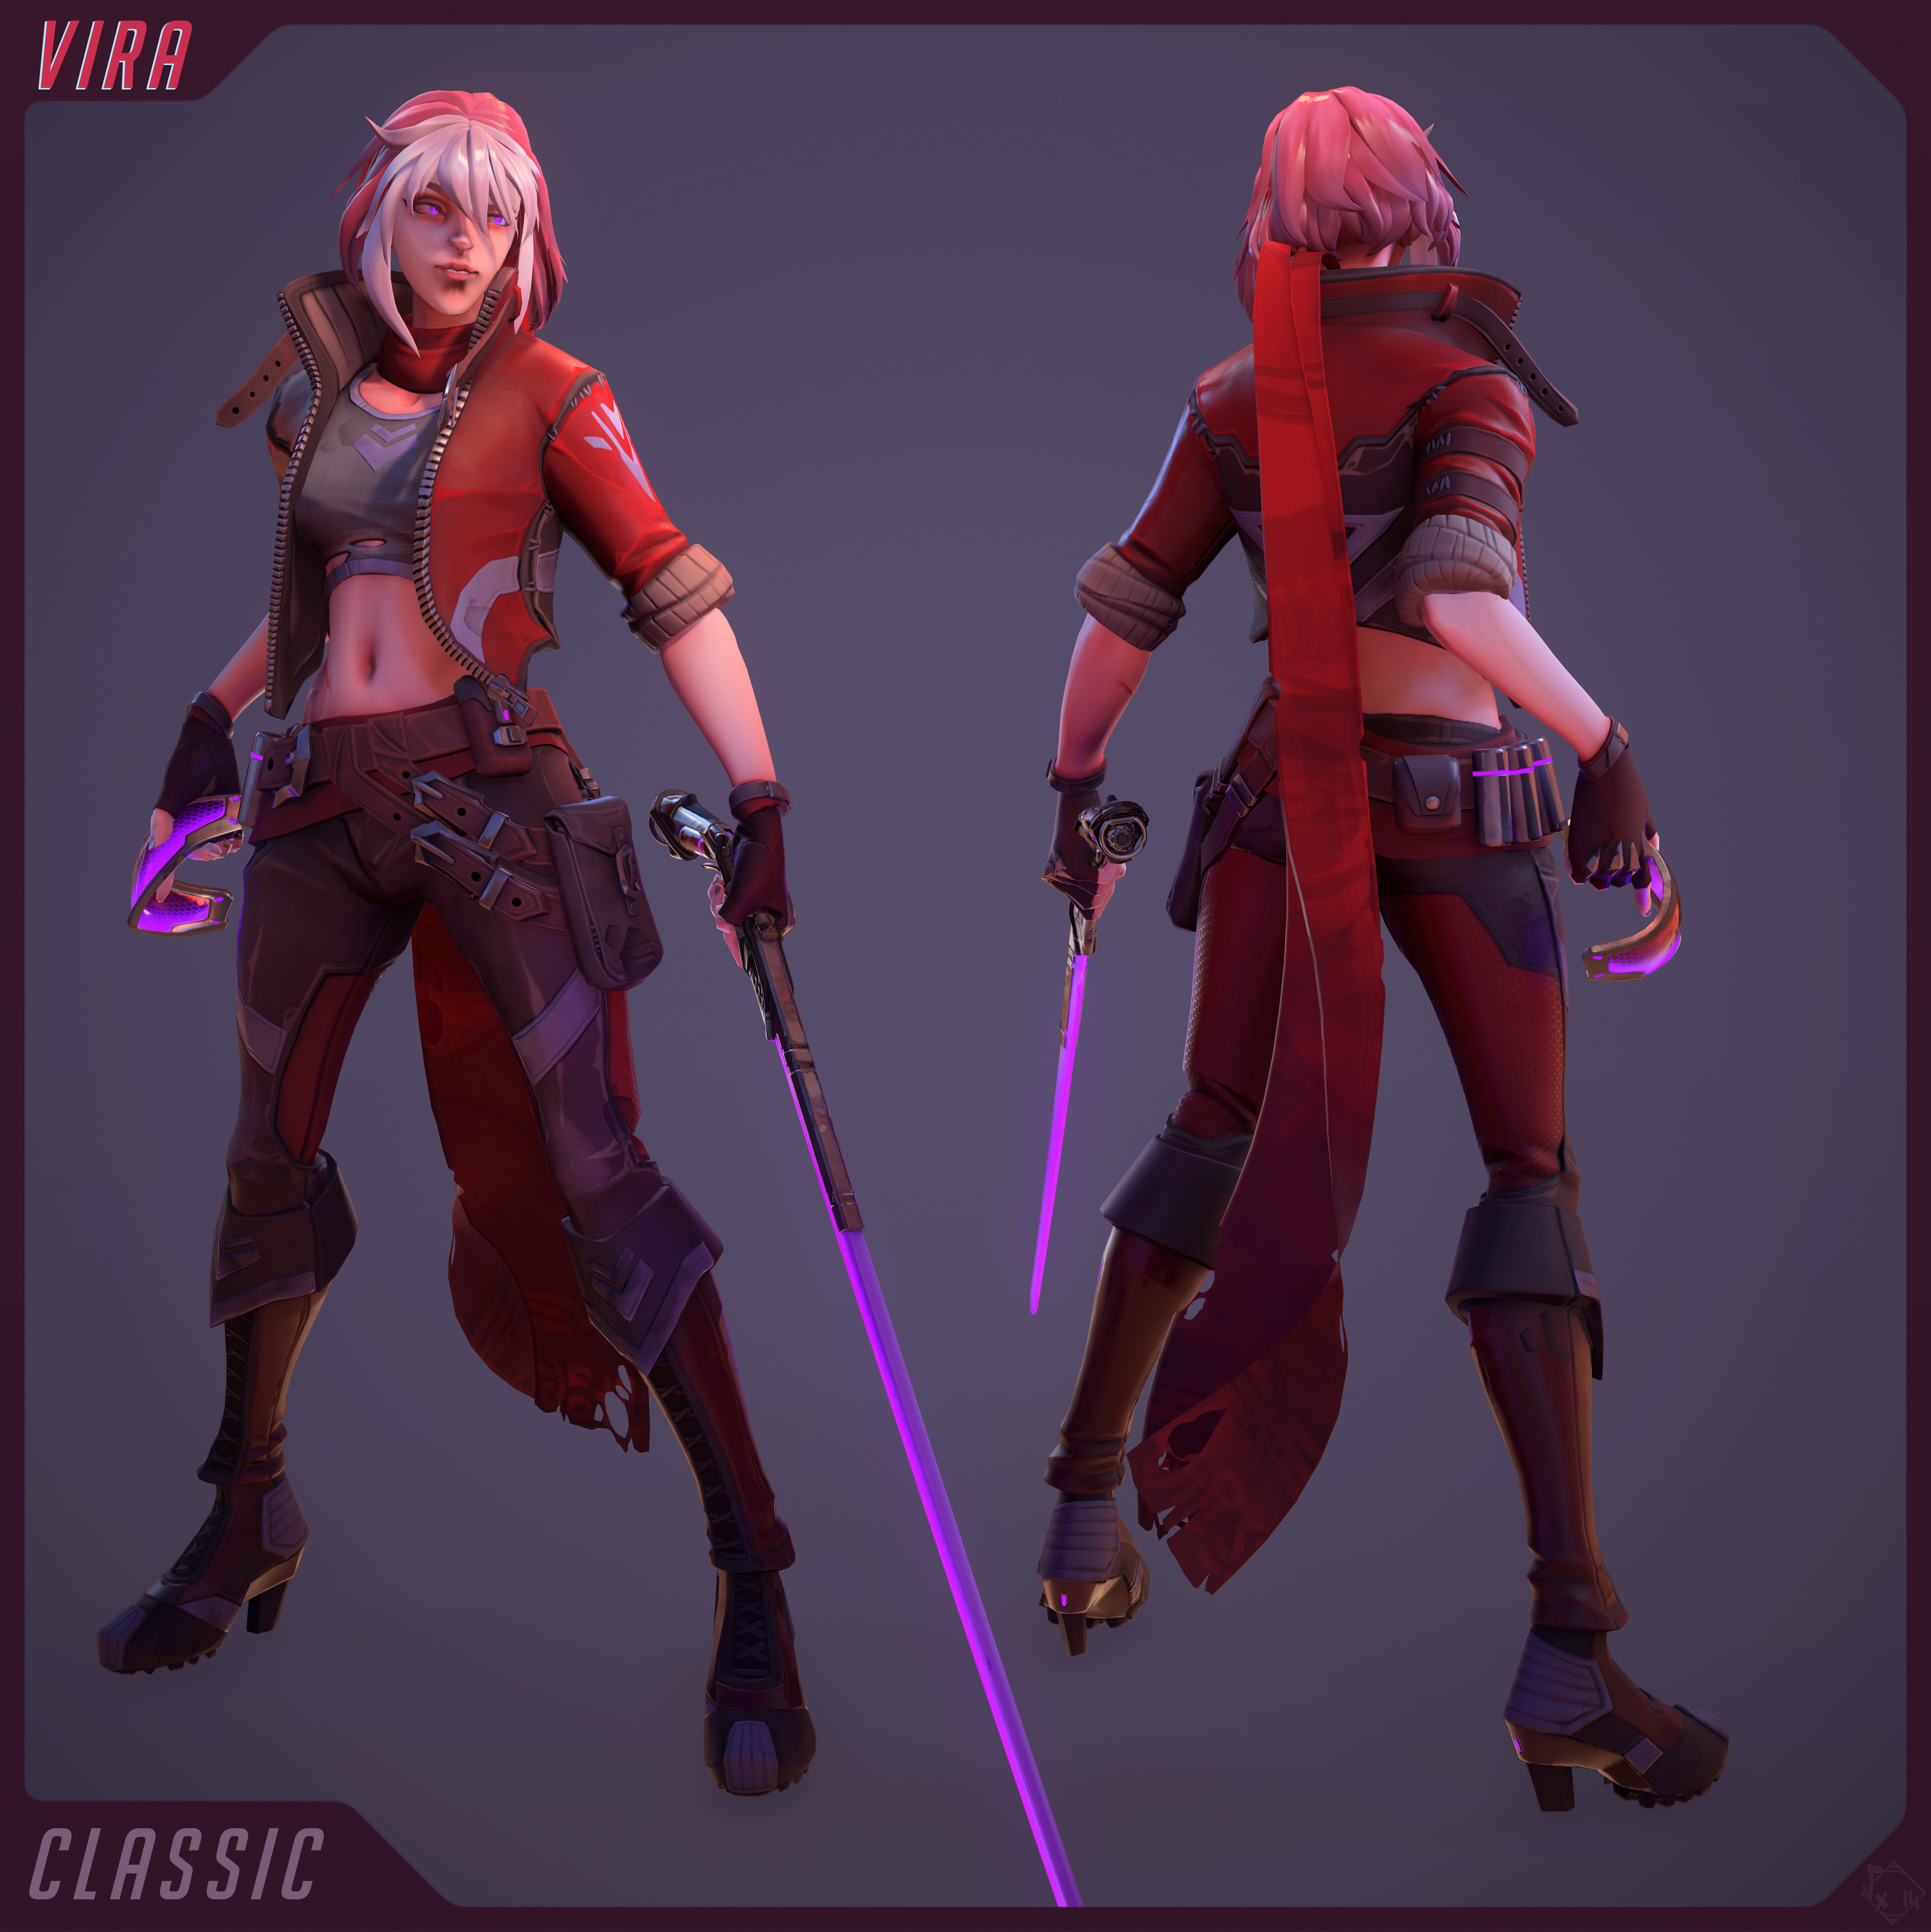 Vira (Classic Skin) - made using Akeytsu (rig/skin/pose) (but not only =P see the project's description for all details ;))